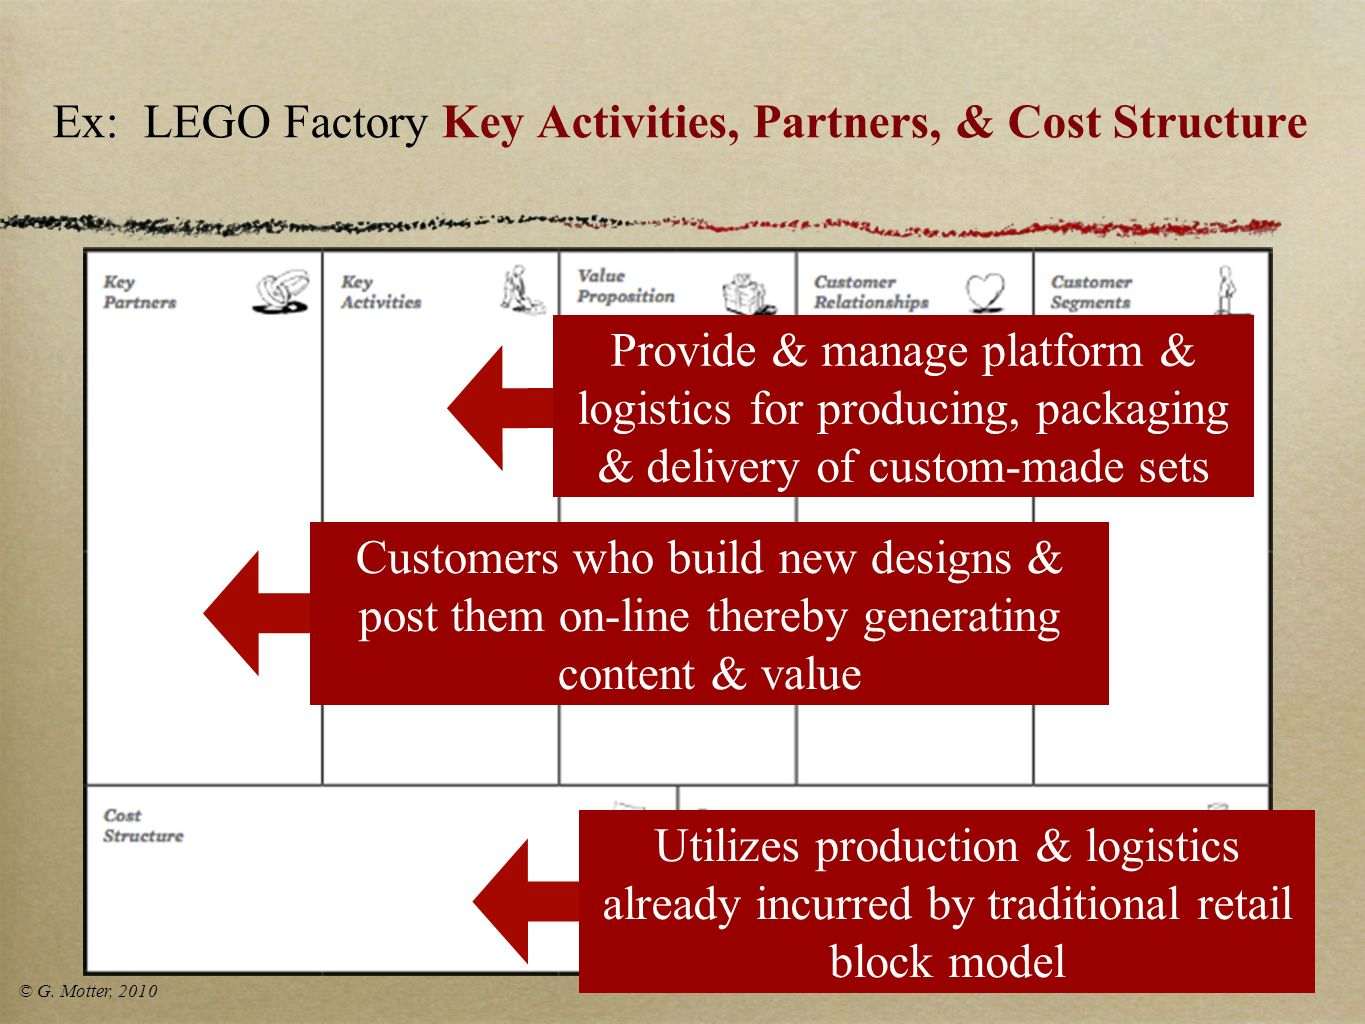 Ex: LEGO Factory Key Activities, Partners, & Cost Structure